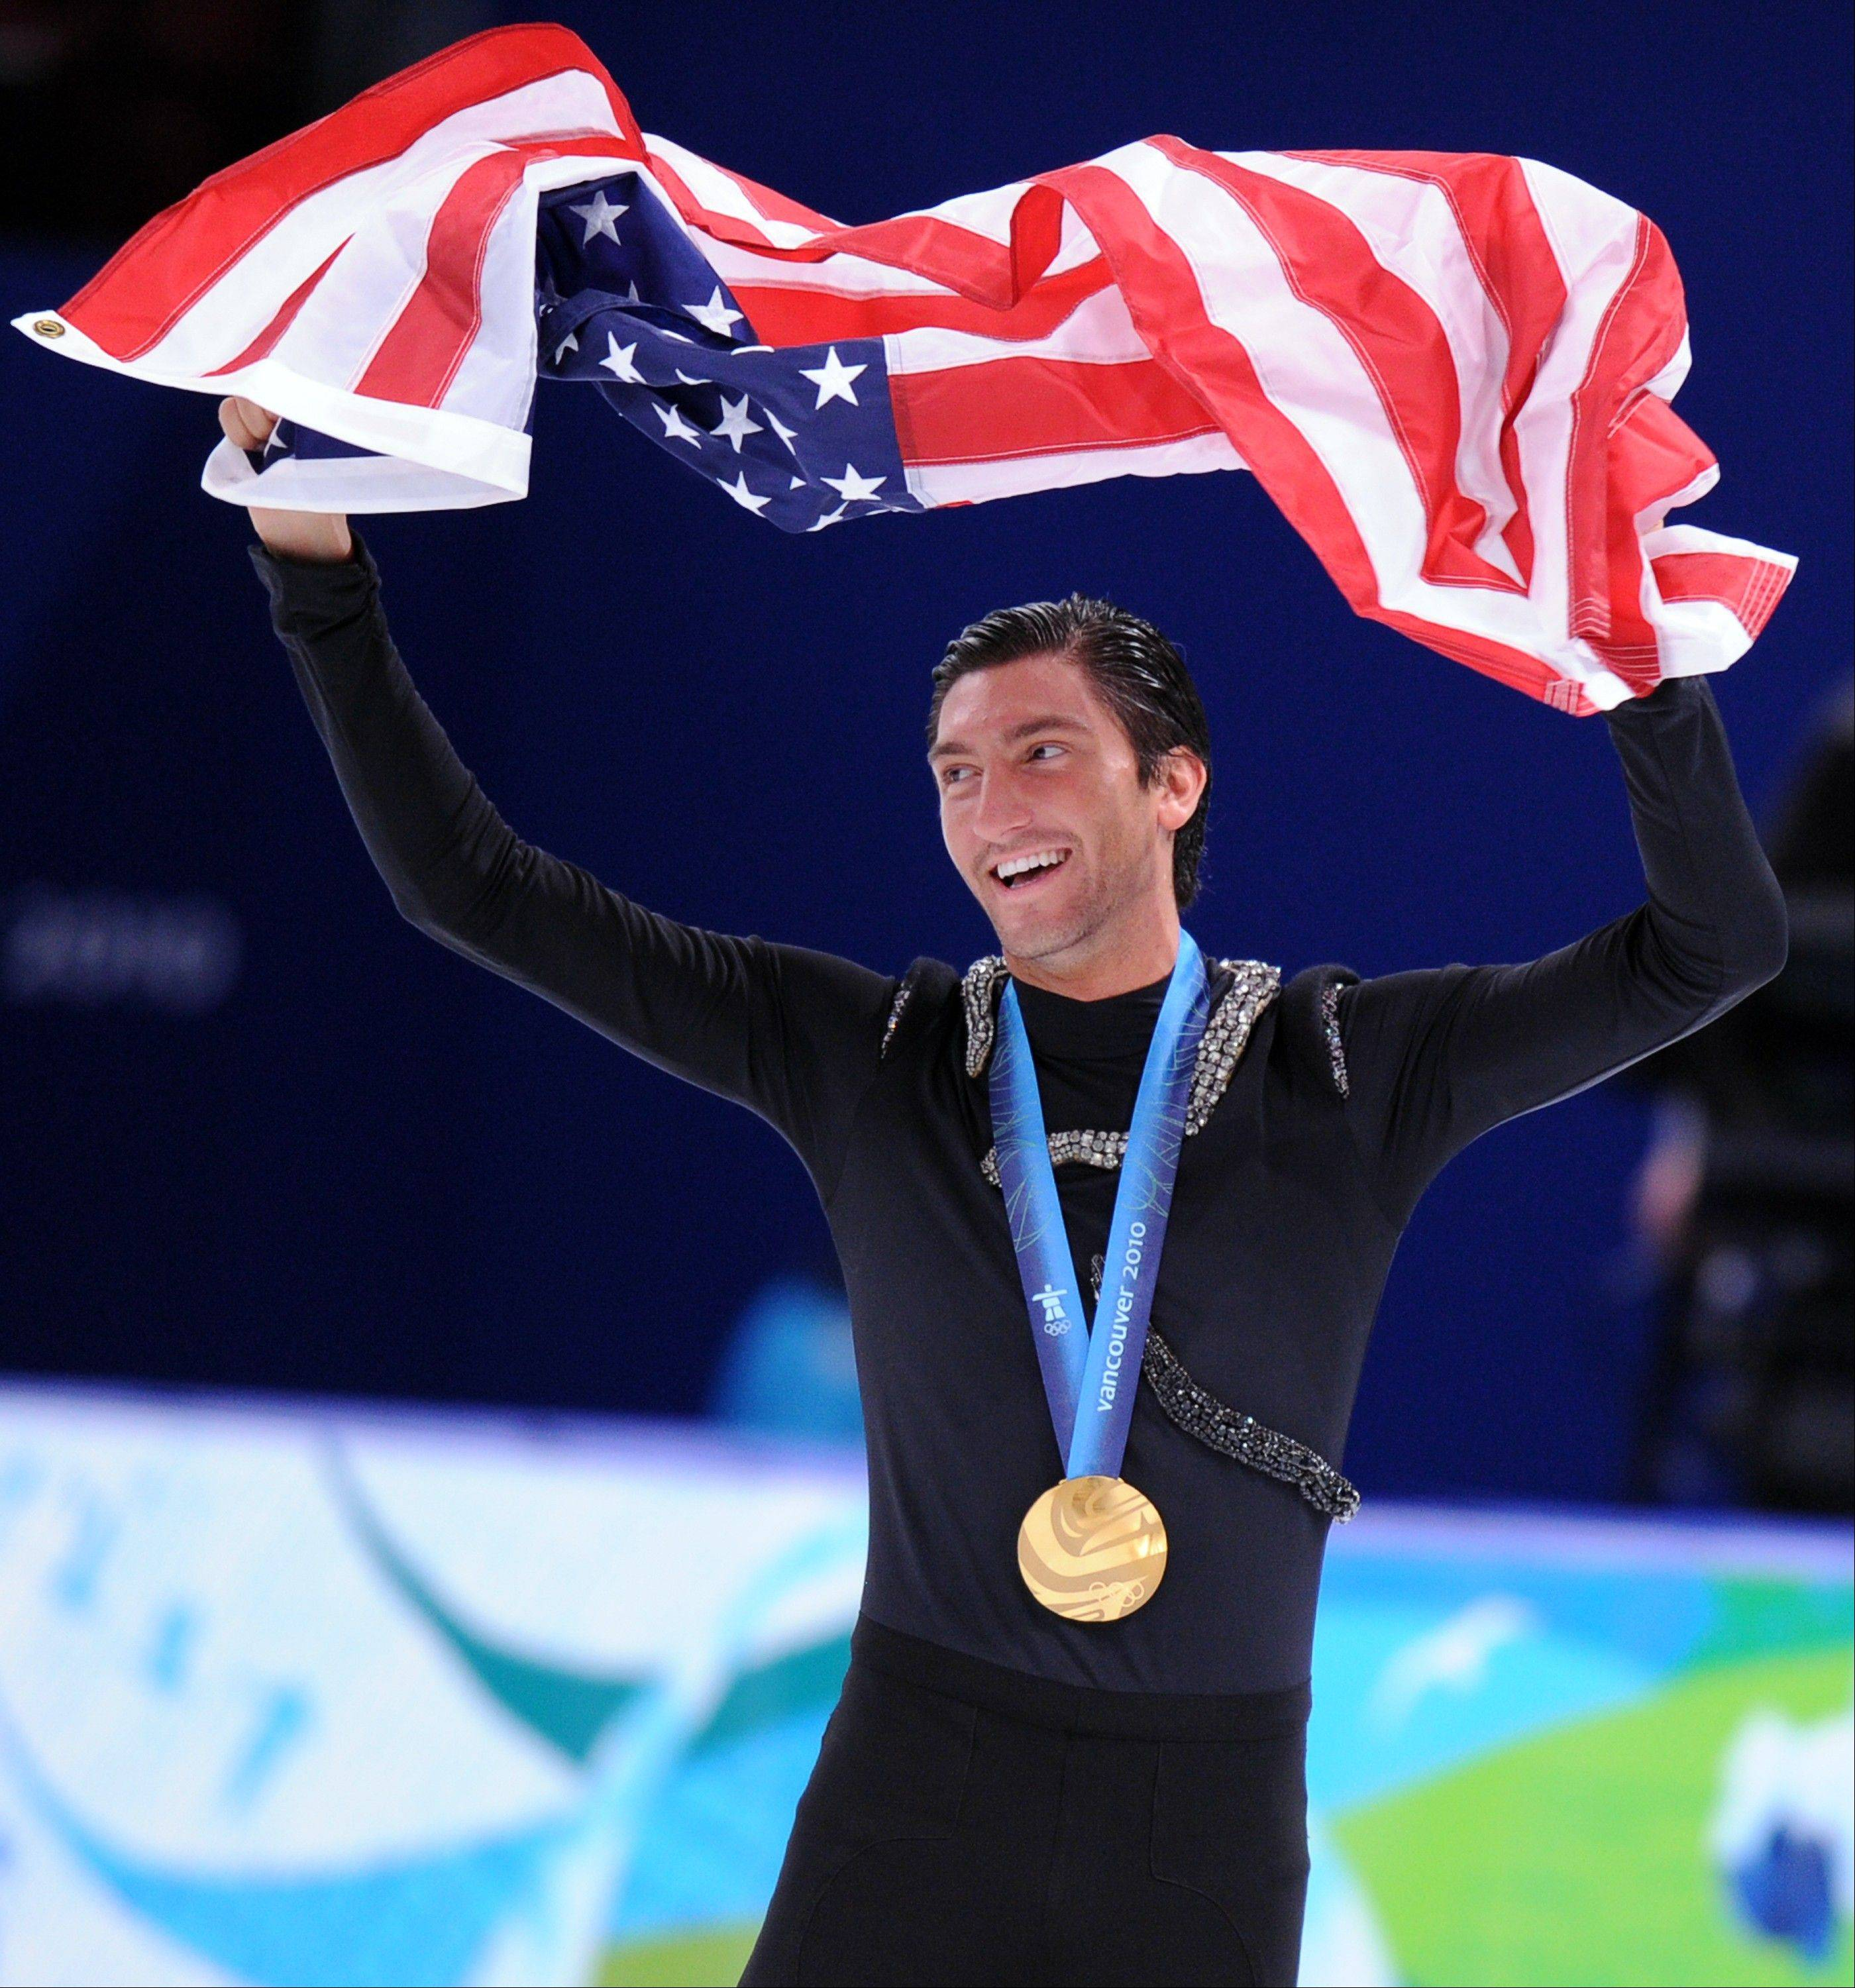 Evan Lysacek, Naperville native and 2010 Olympic gold medal winner, had surgery in November for a sports hernia.